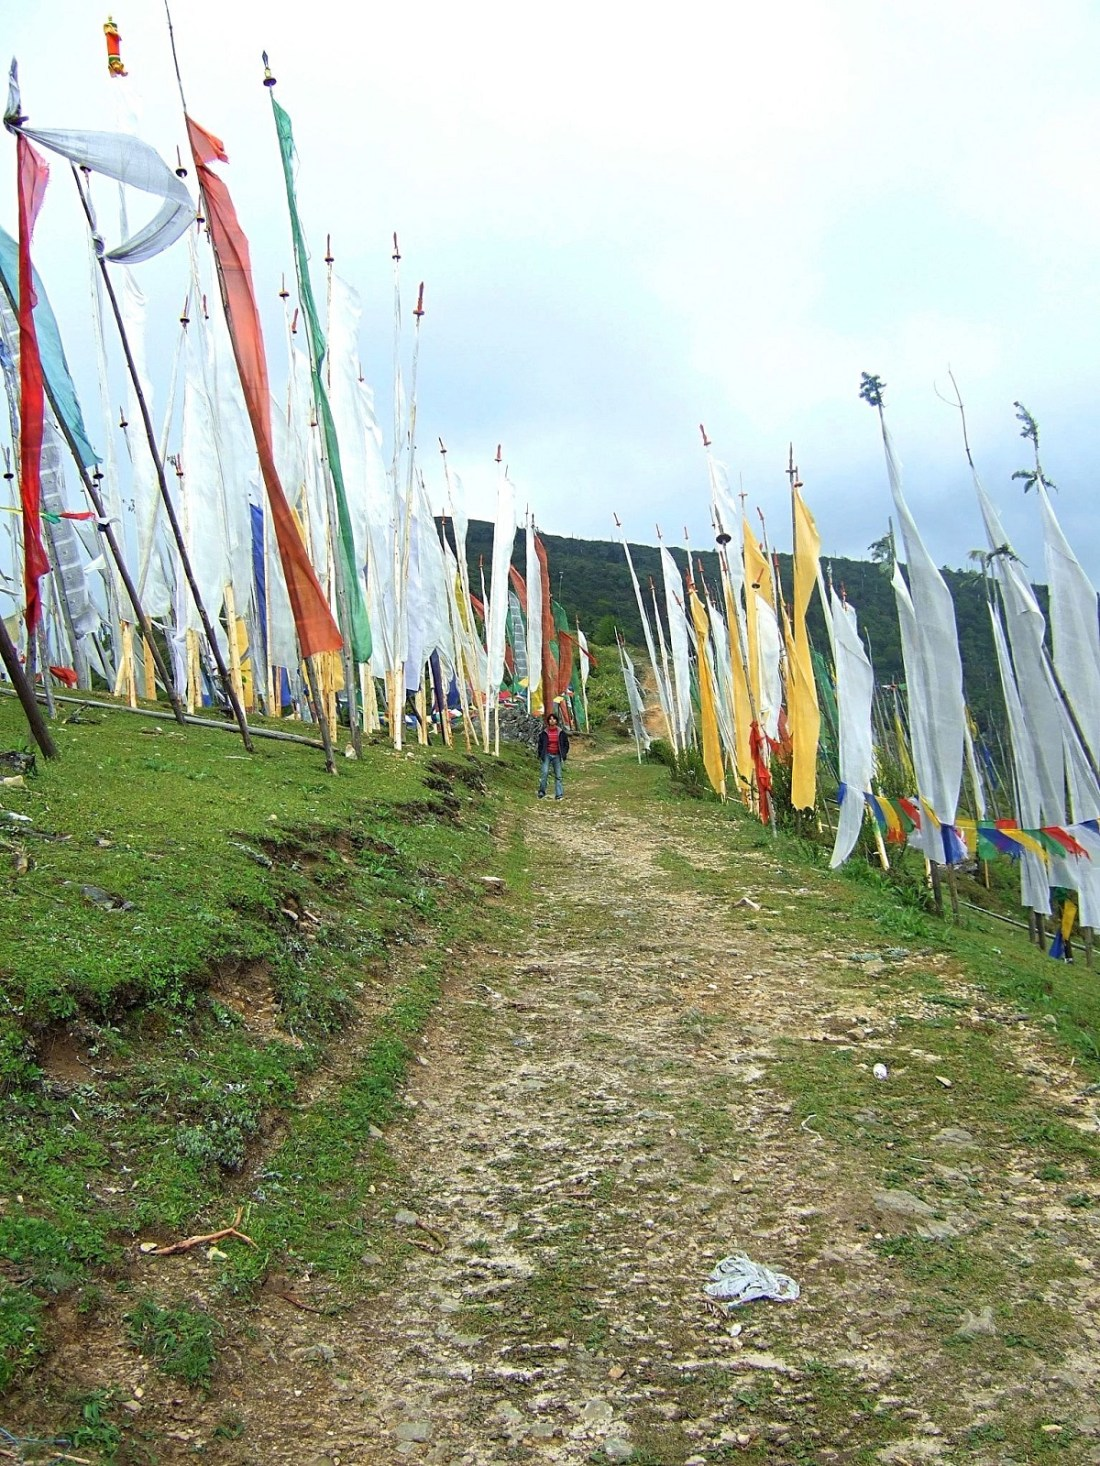 Prayer flags send their prayers to the gods riding on the wind